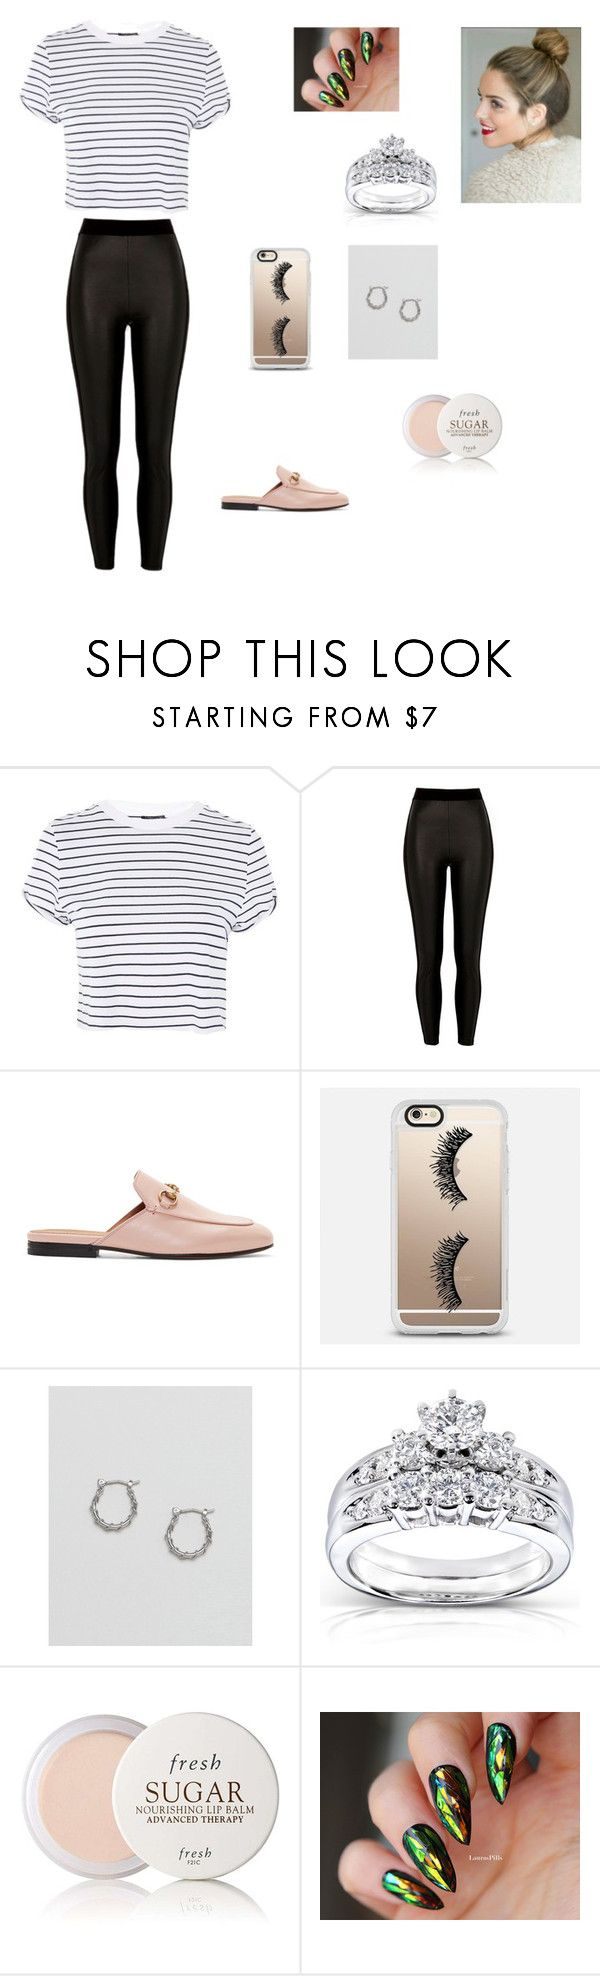 """""""İn the home💒"""" by aiea ❤ liked on Polyvore featuring Topshop, River Island, Gucci, Casetify, ASOS, Kobelli and Fresh"""